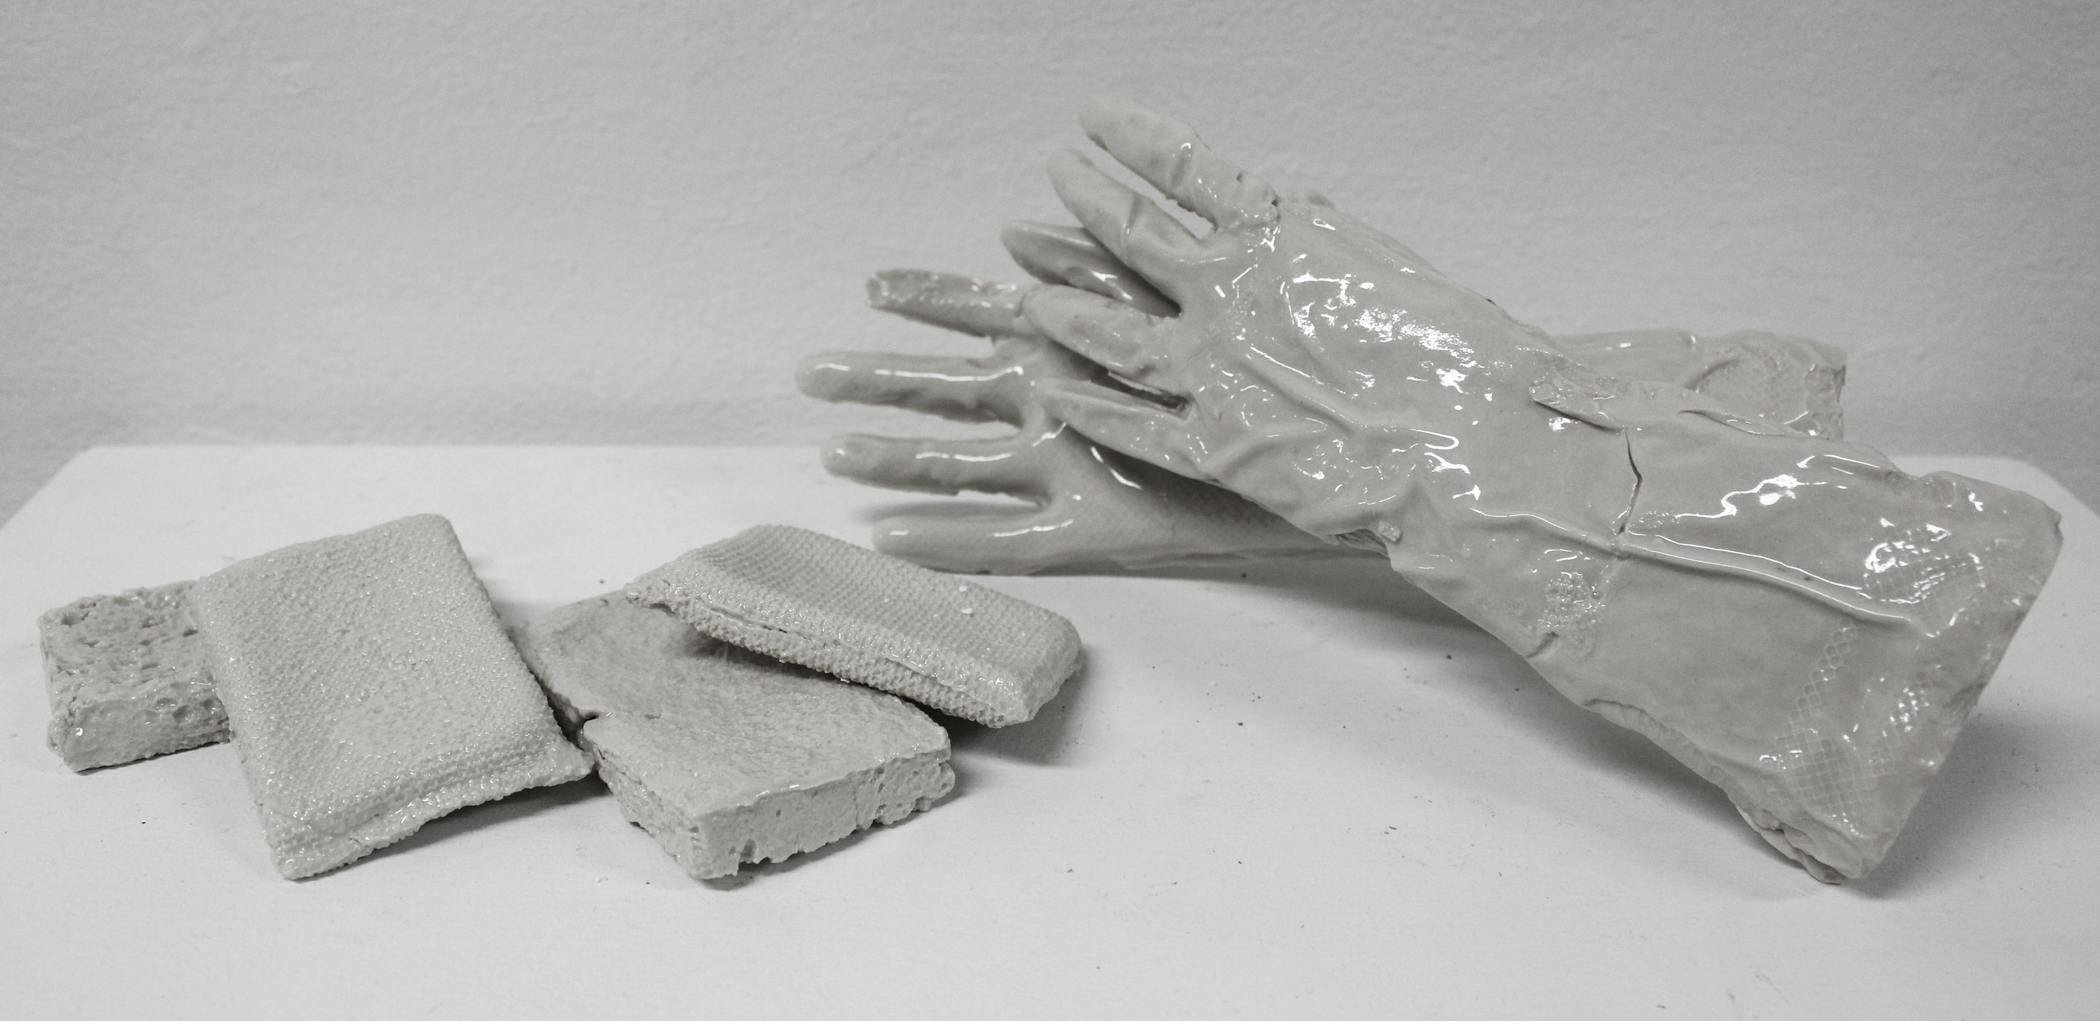 Rubber Gloves & Cleaning Sponges